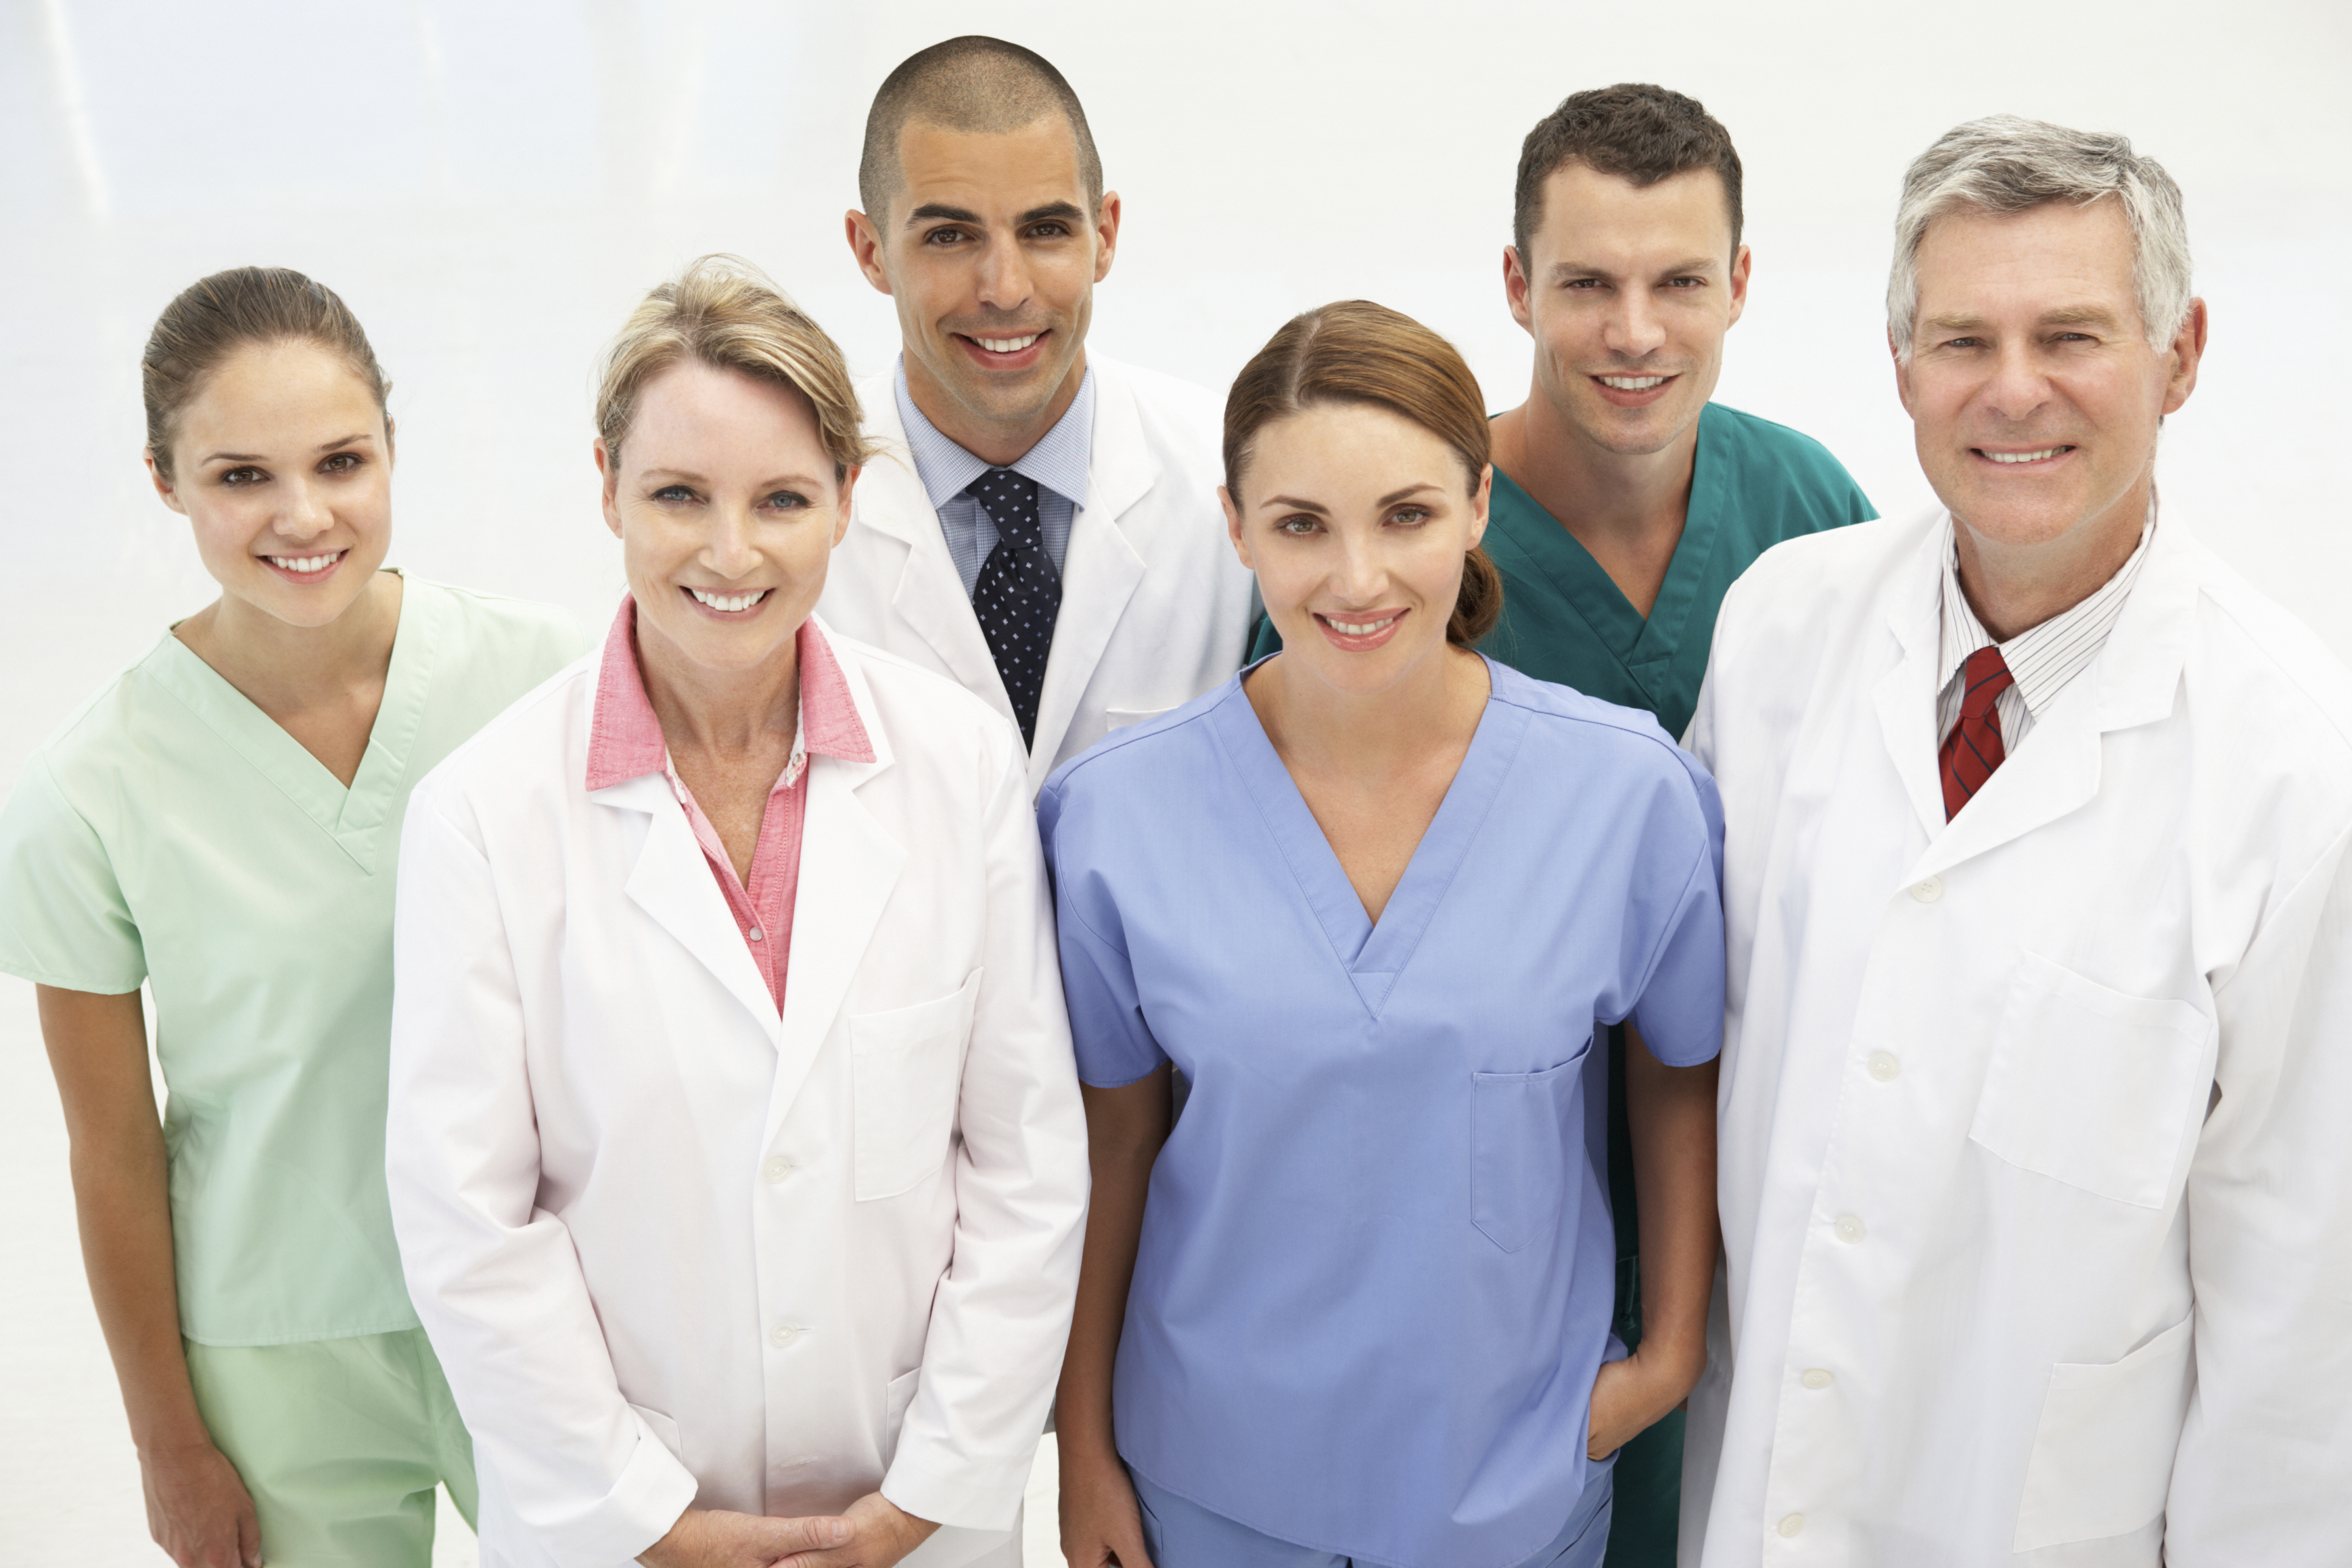 Choosing an oncology care provider